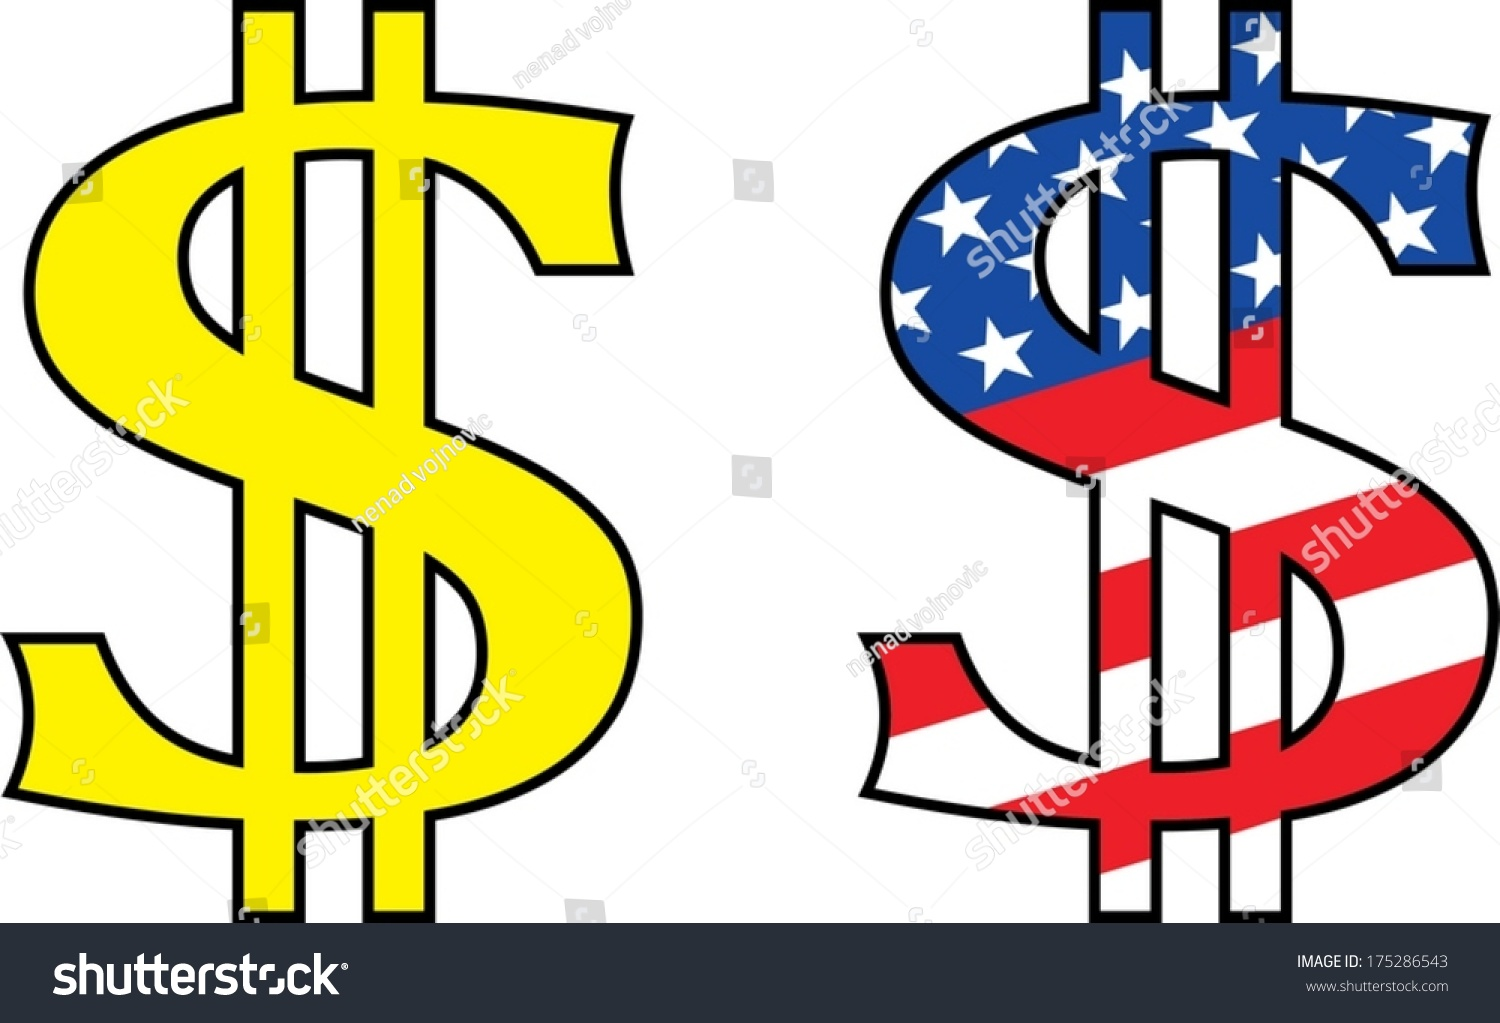 Dollar symbol painted colors united states stock vector 175286543 dollar symbol painted in the colors of united states of america biocorpaavc Gallery